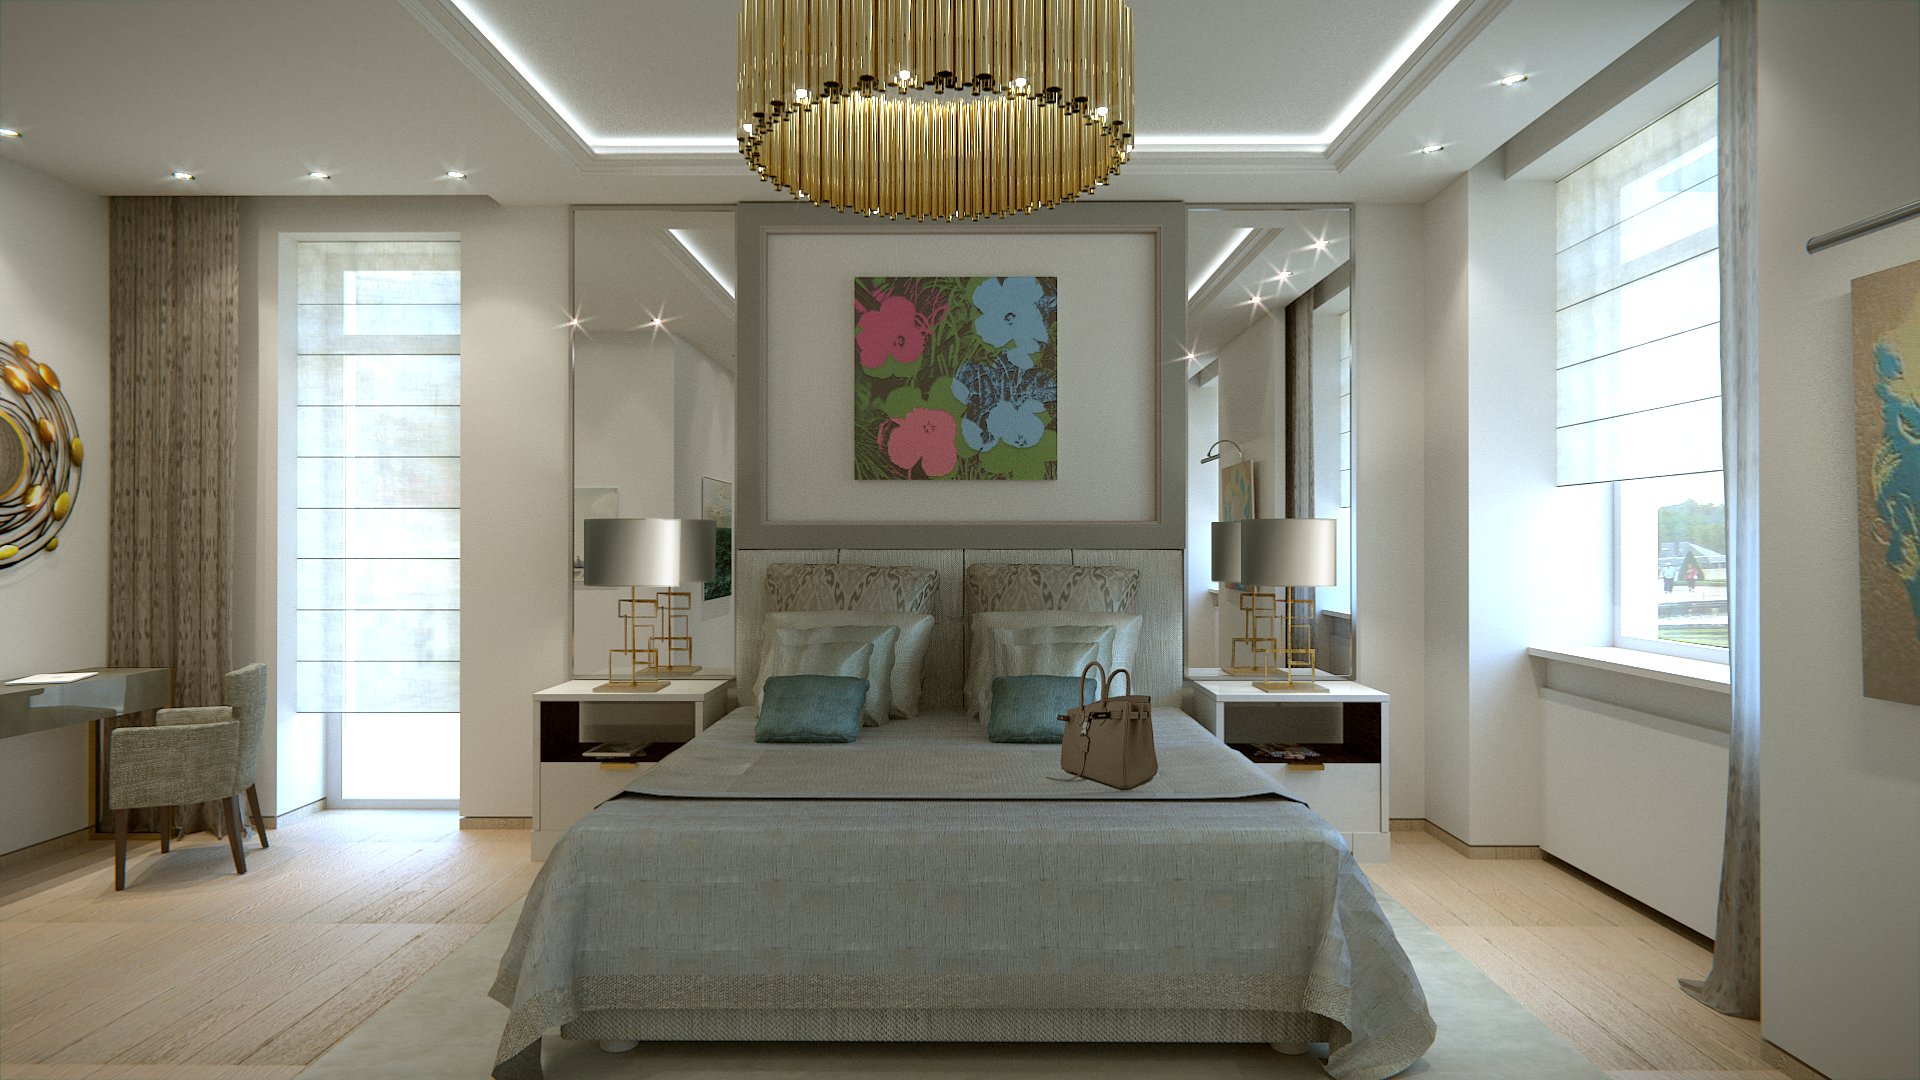 Luxury Bedroom ideas recessed ceiling with led light